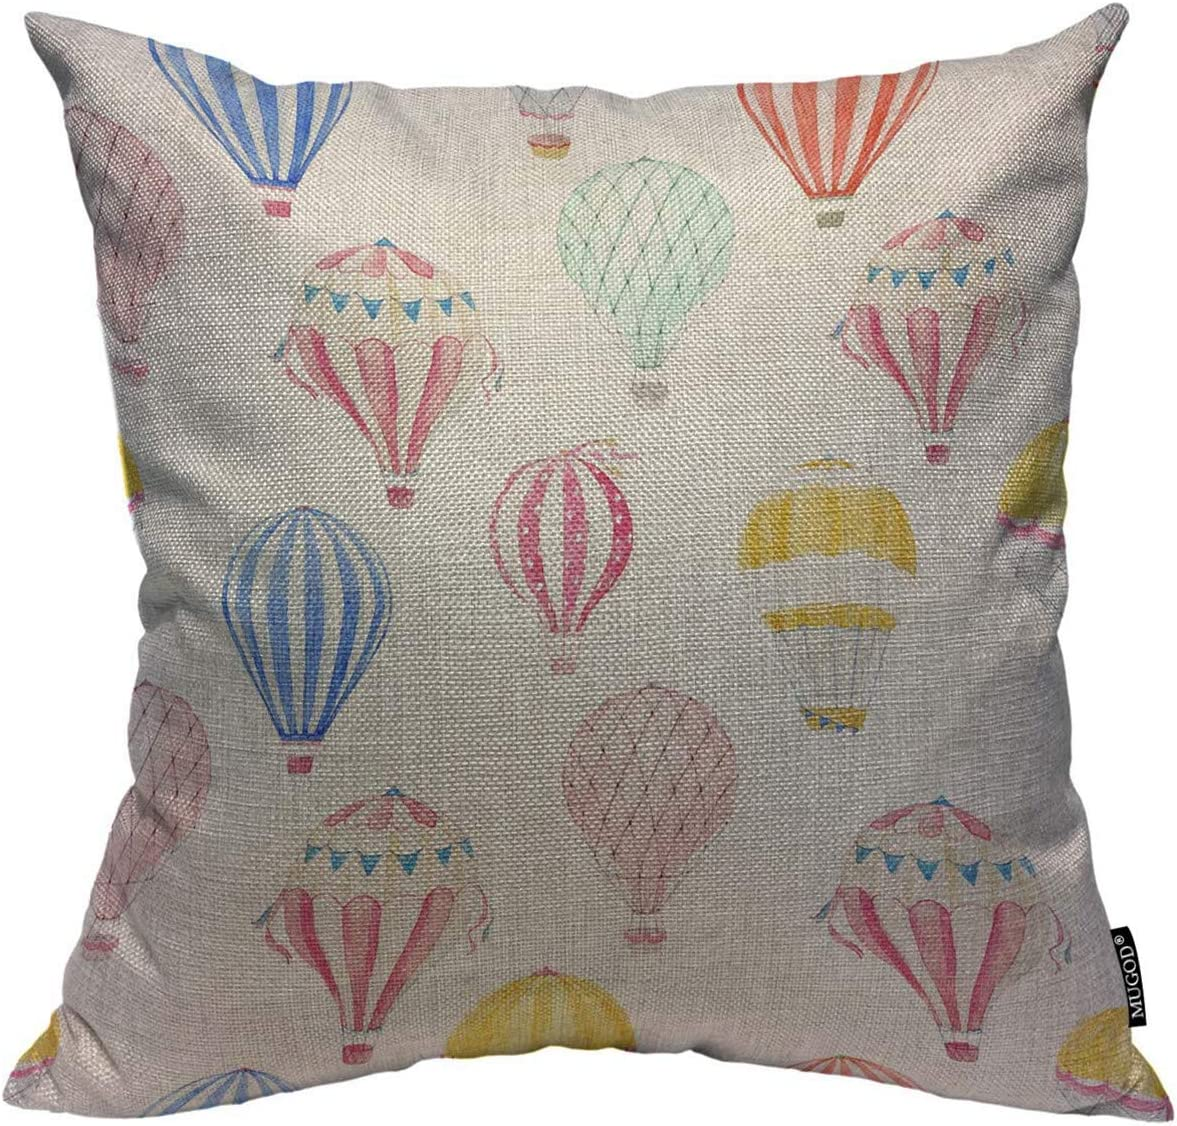 Mugod Balloon Throw Pillow Cover Cute Watercolor Hot Air Balloons Pattern Decorative Square Pillow Case for Home Bedroom Living Room Cushion Cover 18x18 Inch